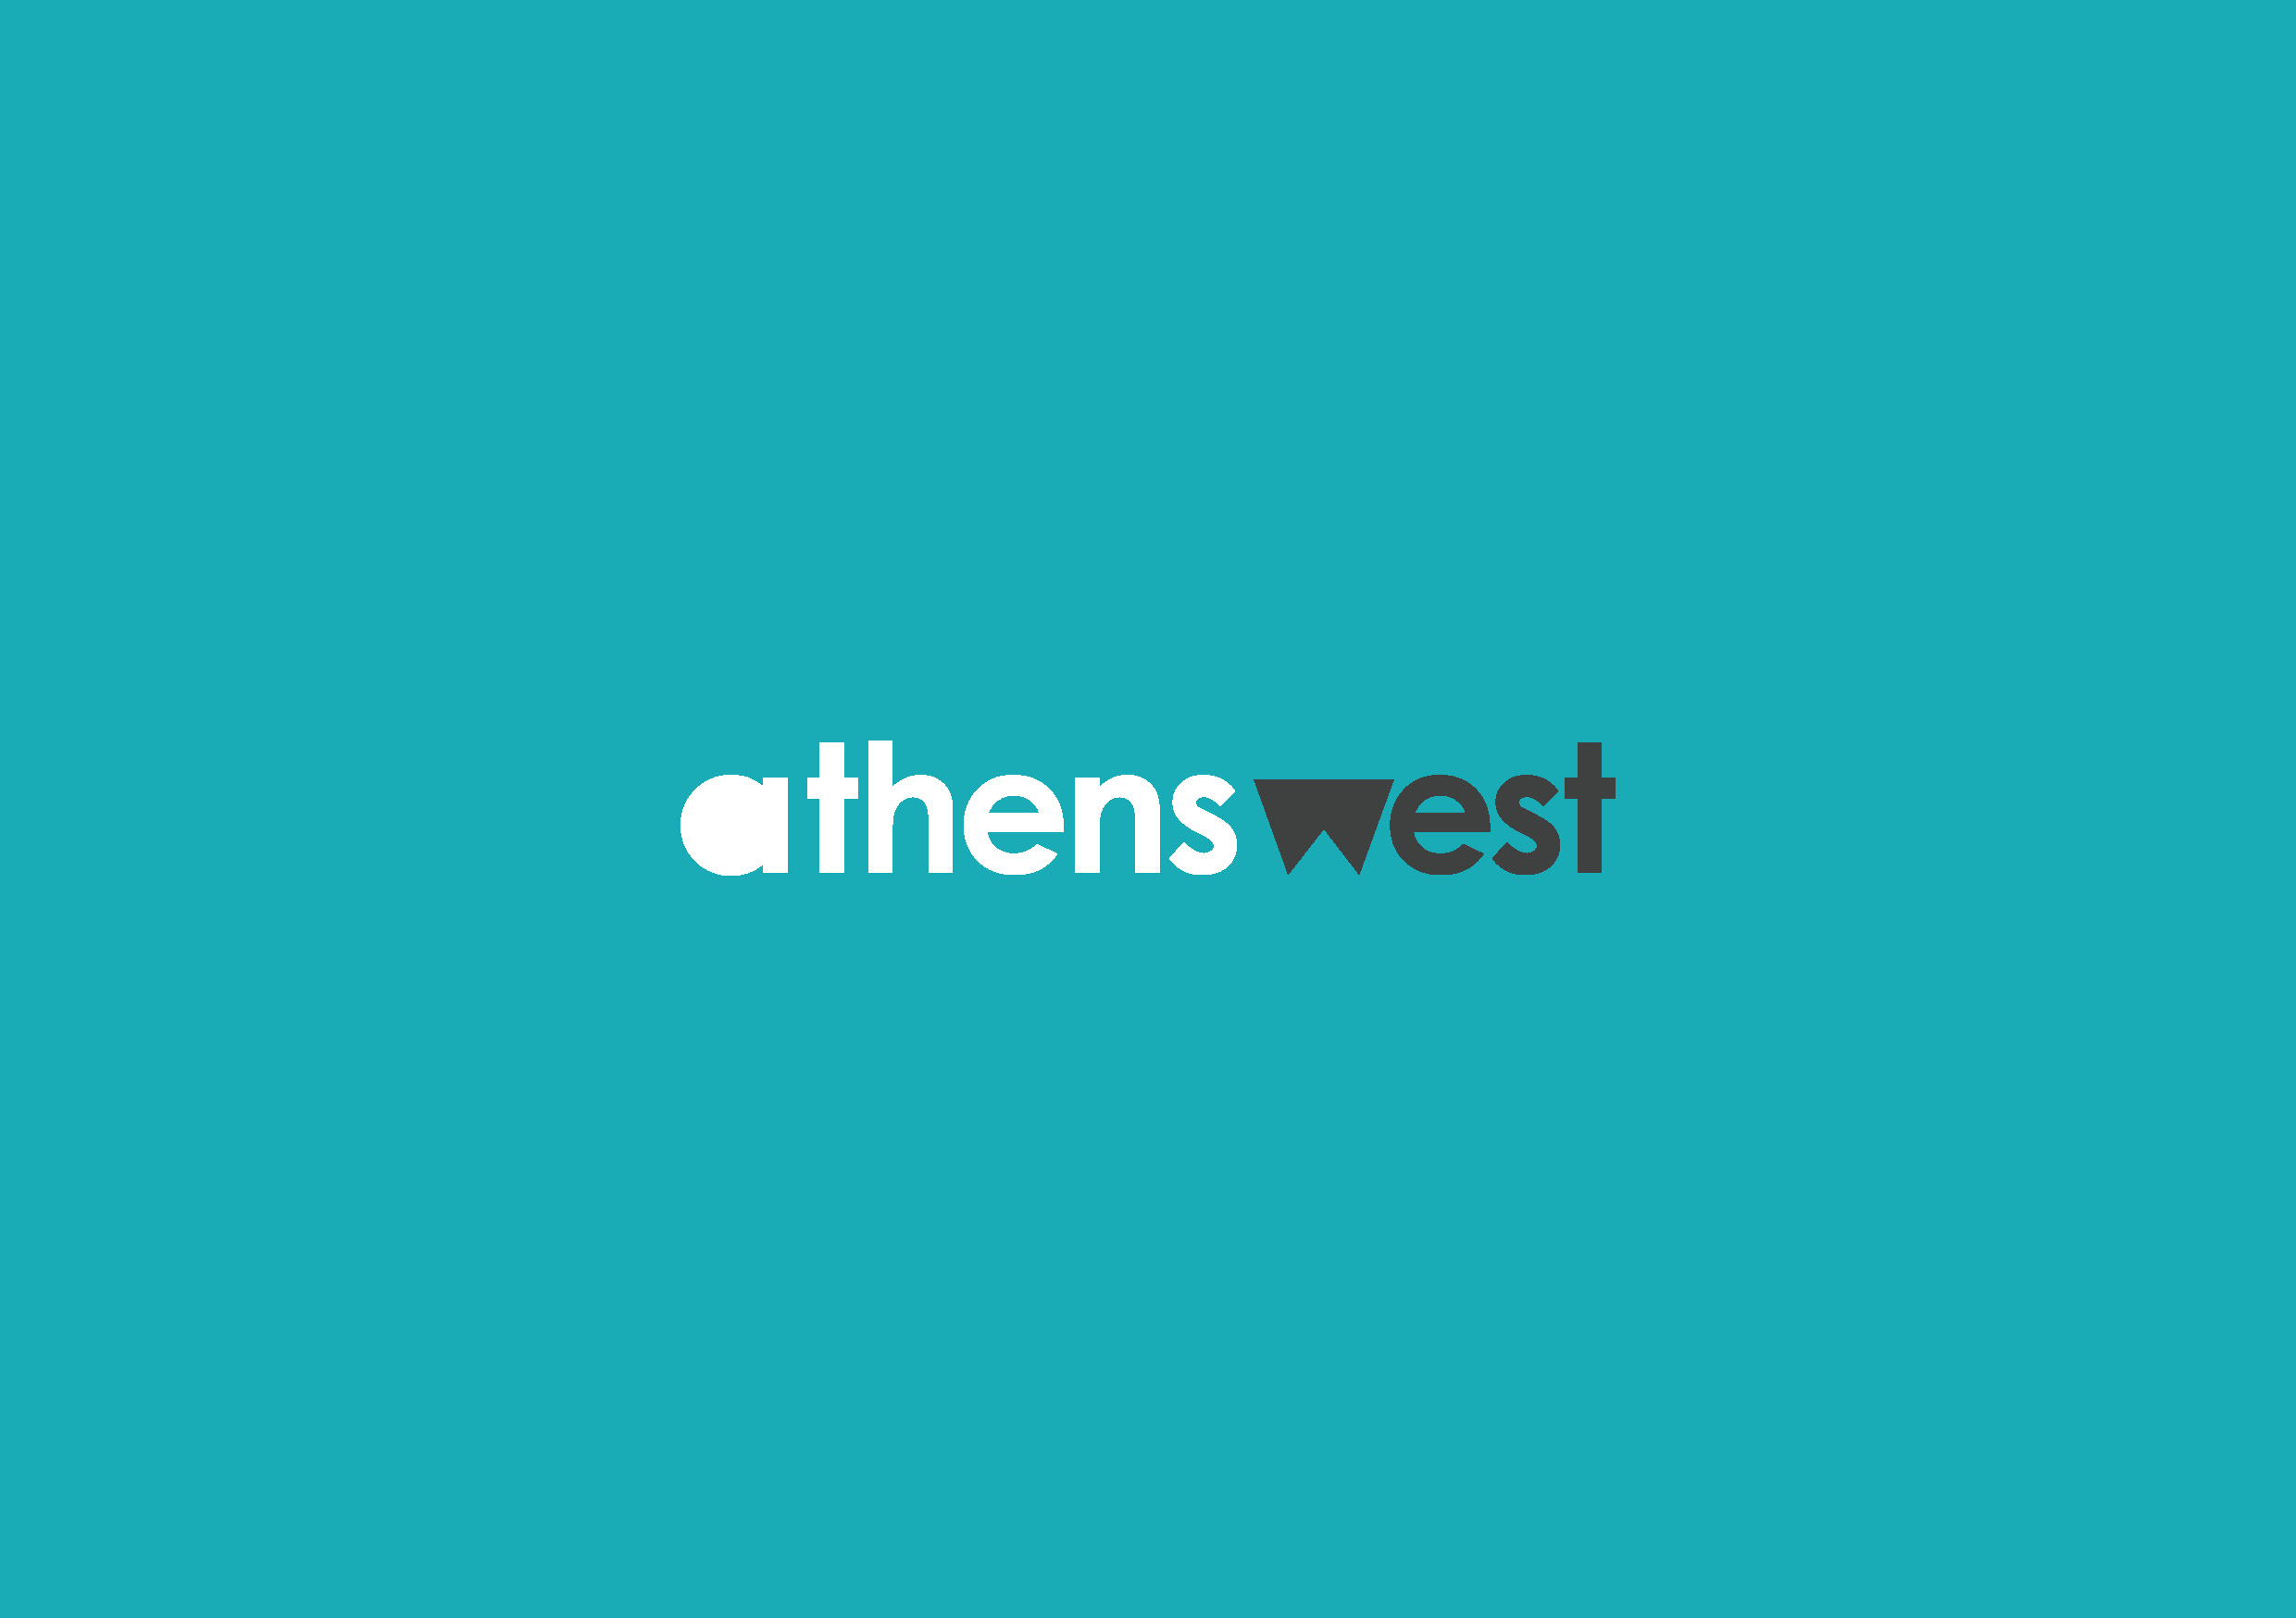 Athenswest logo